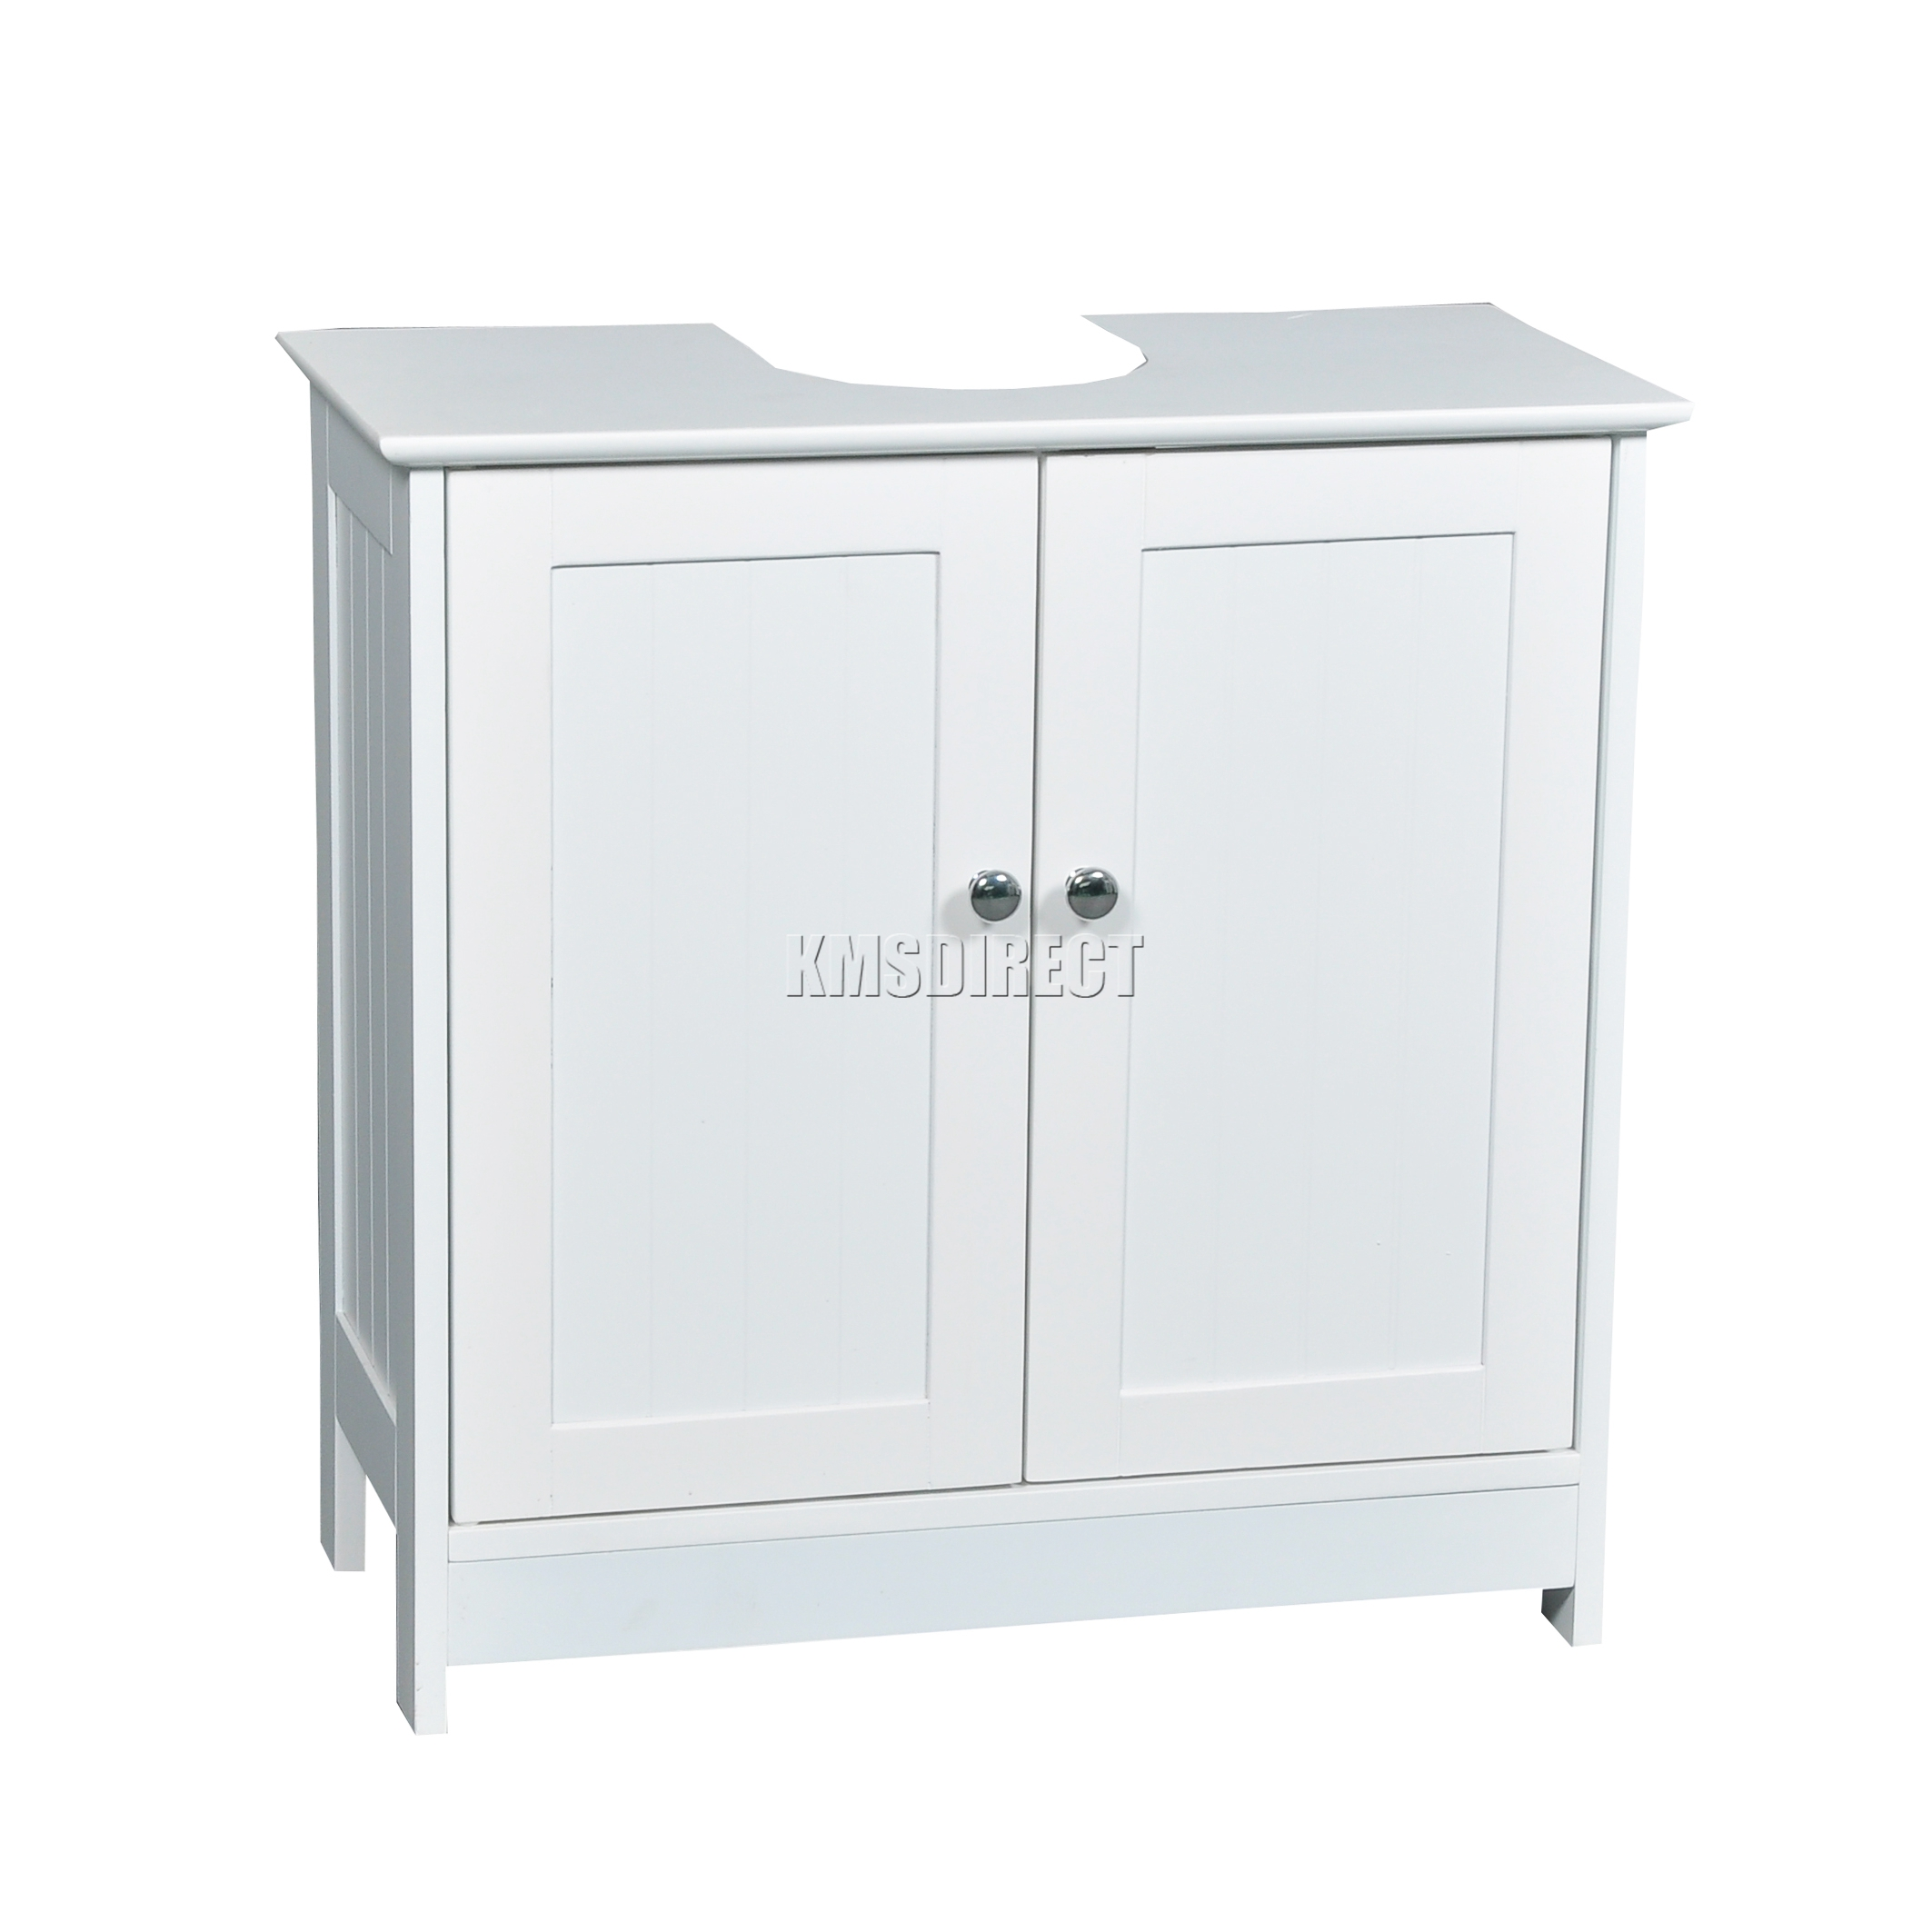 Foxhunter Vanity Unit Wooden Under Wash Basin Bathroom